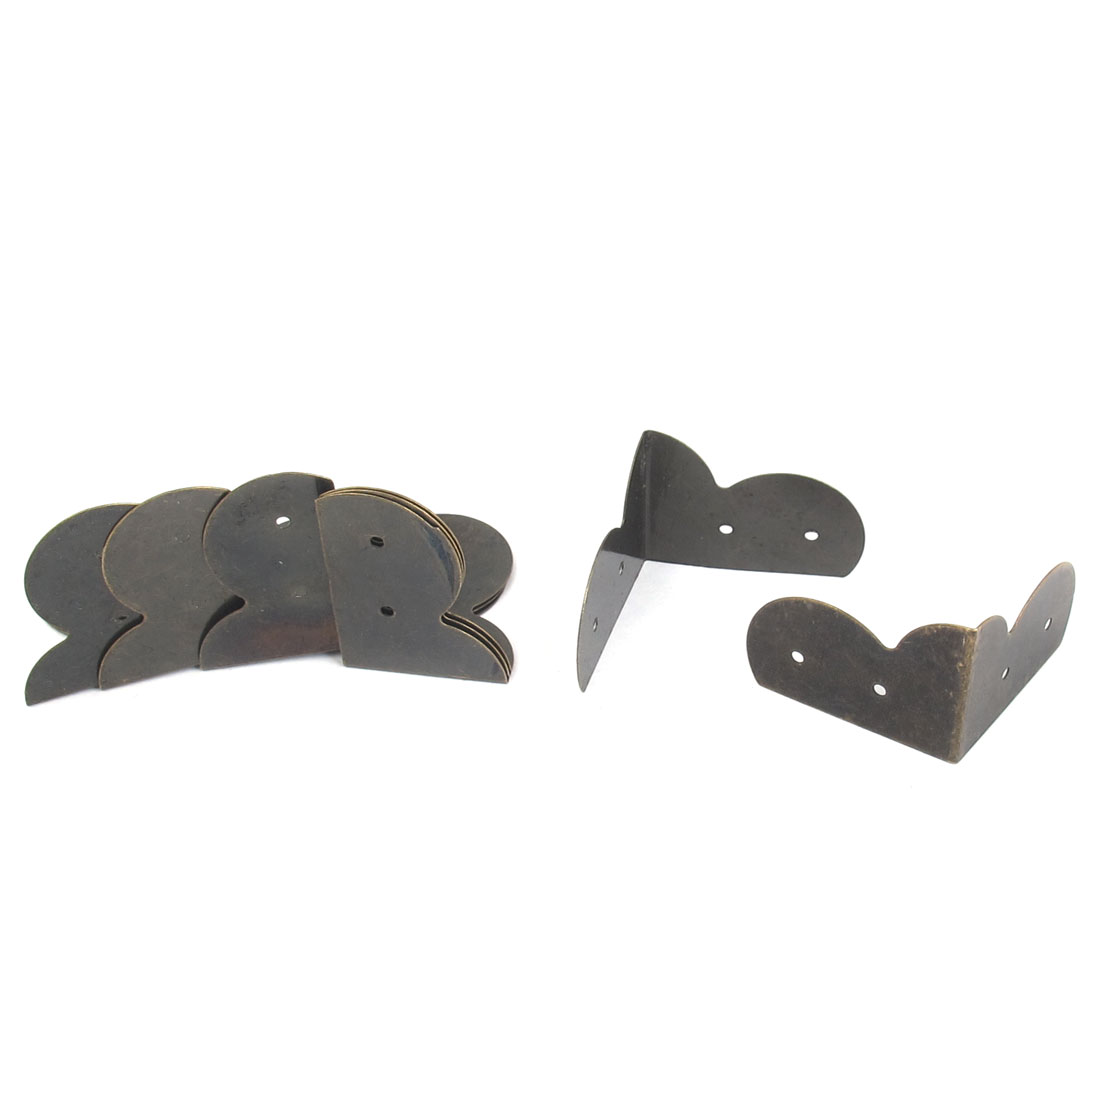 30mmx30mm Box Desk Edge Cover Corner Angle Brackets Braces Protectors Decorative Bronze Tone 8pcs